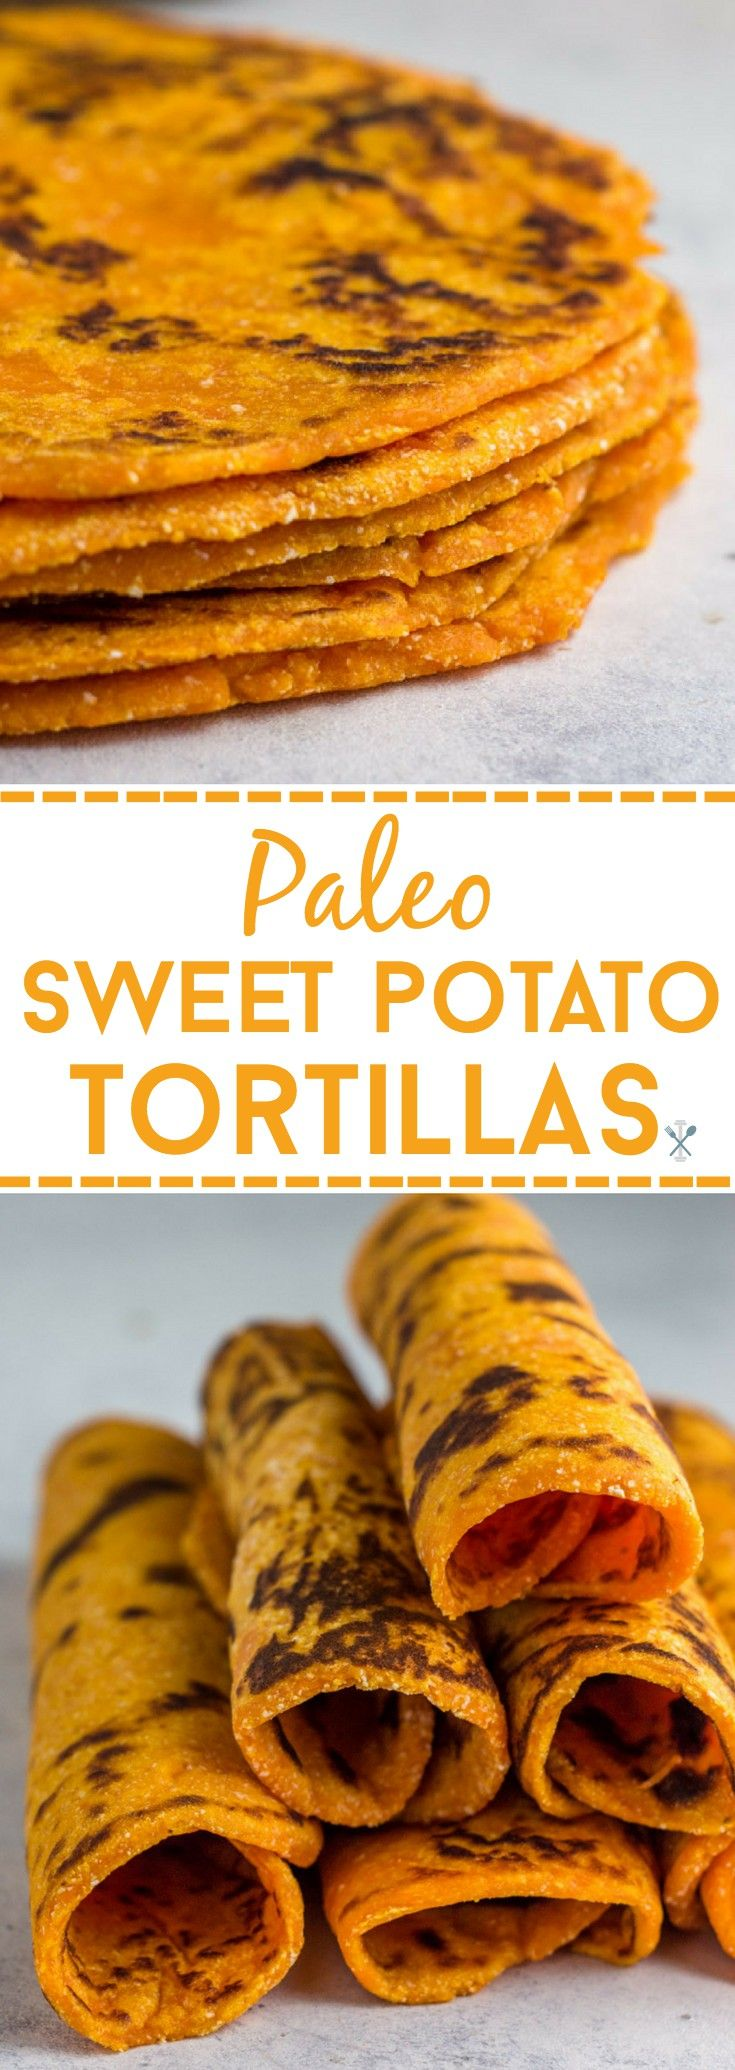 These grainless, eggless, paleo sweet potato tortillas are the perfect healthy alternative for flour or corn tortillas. Simple ingredients and freezer friendly. via @physicalkitch